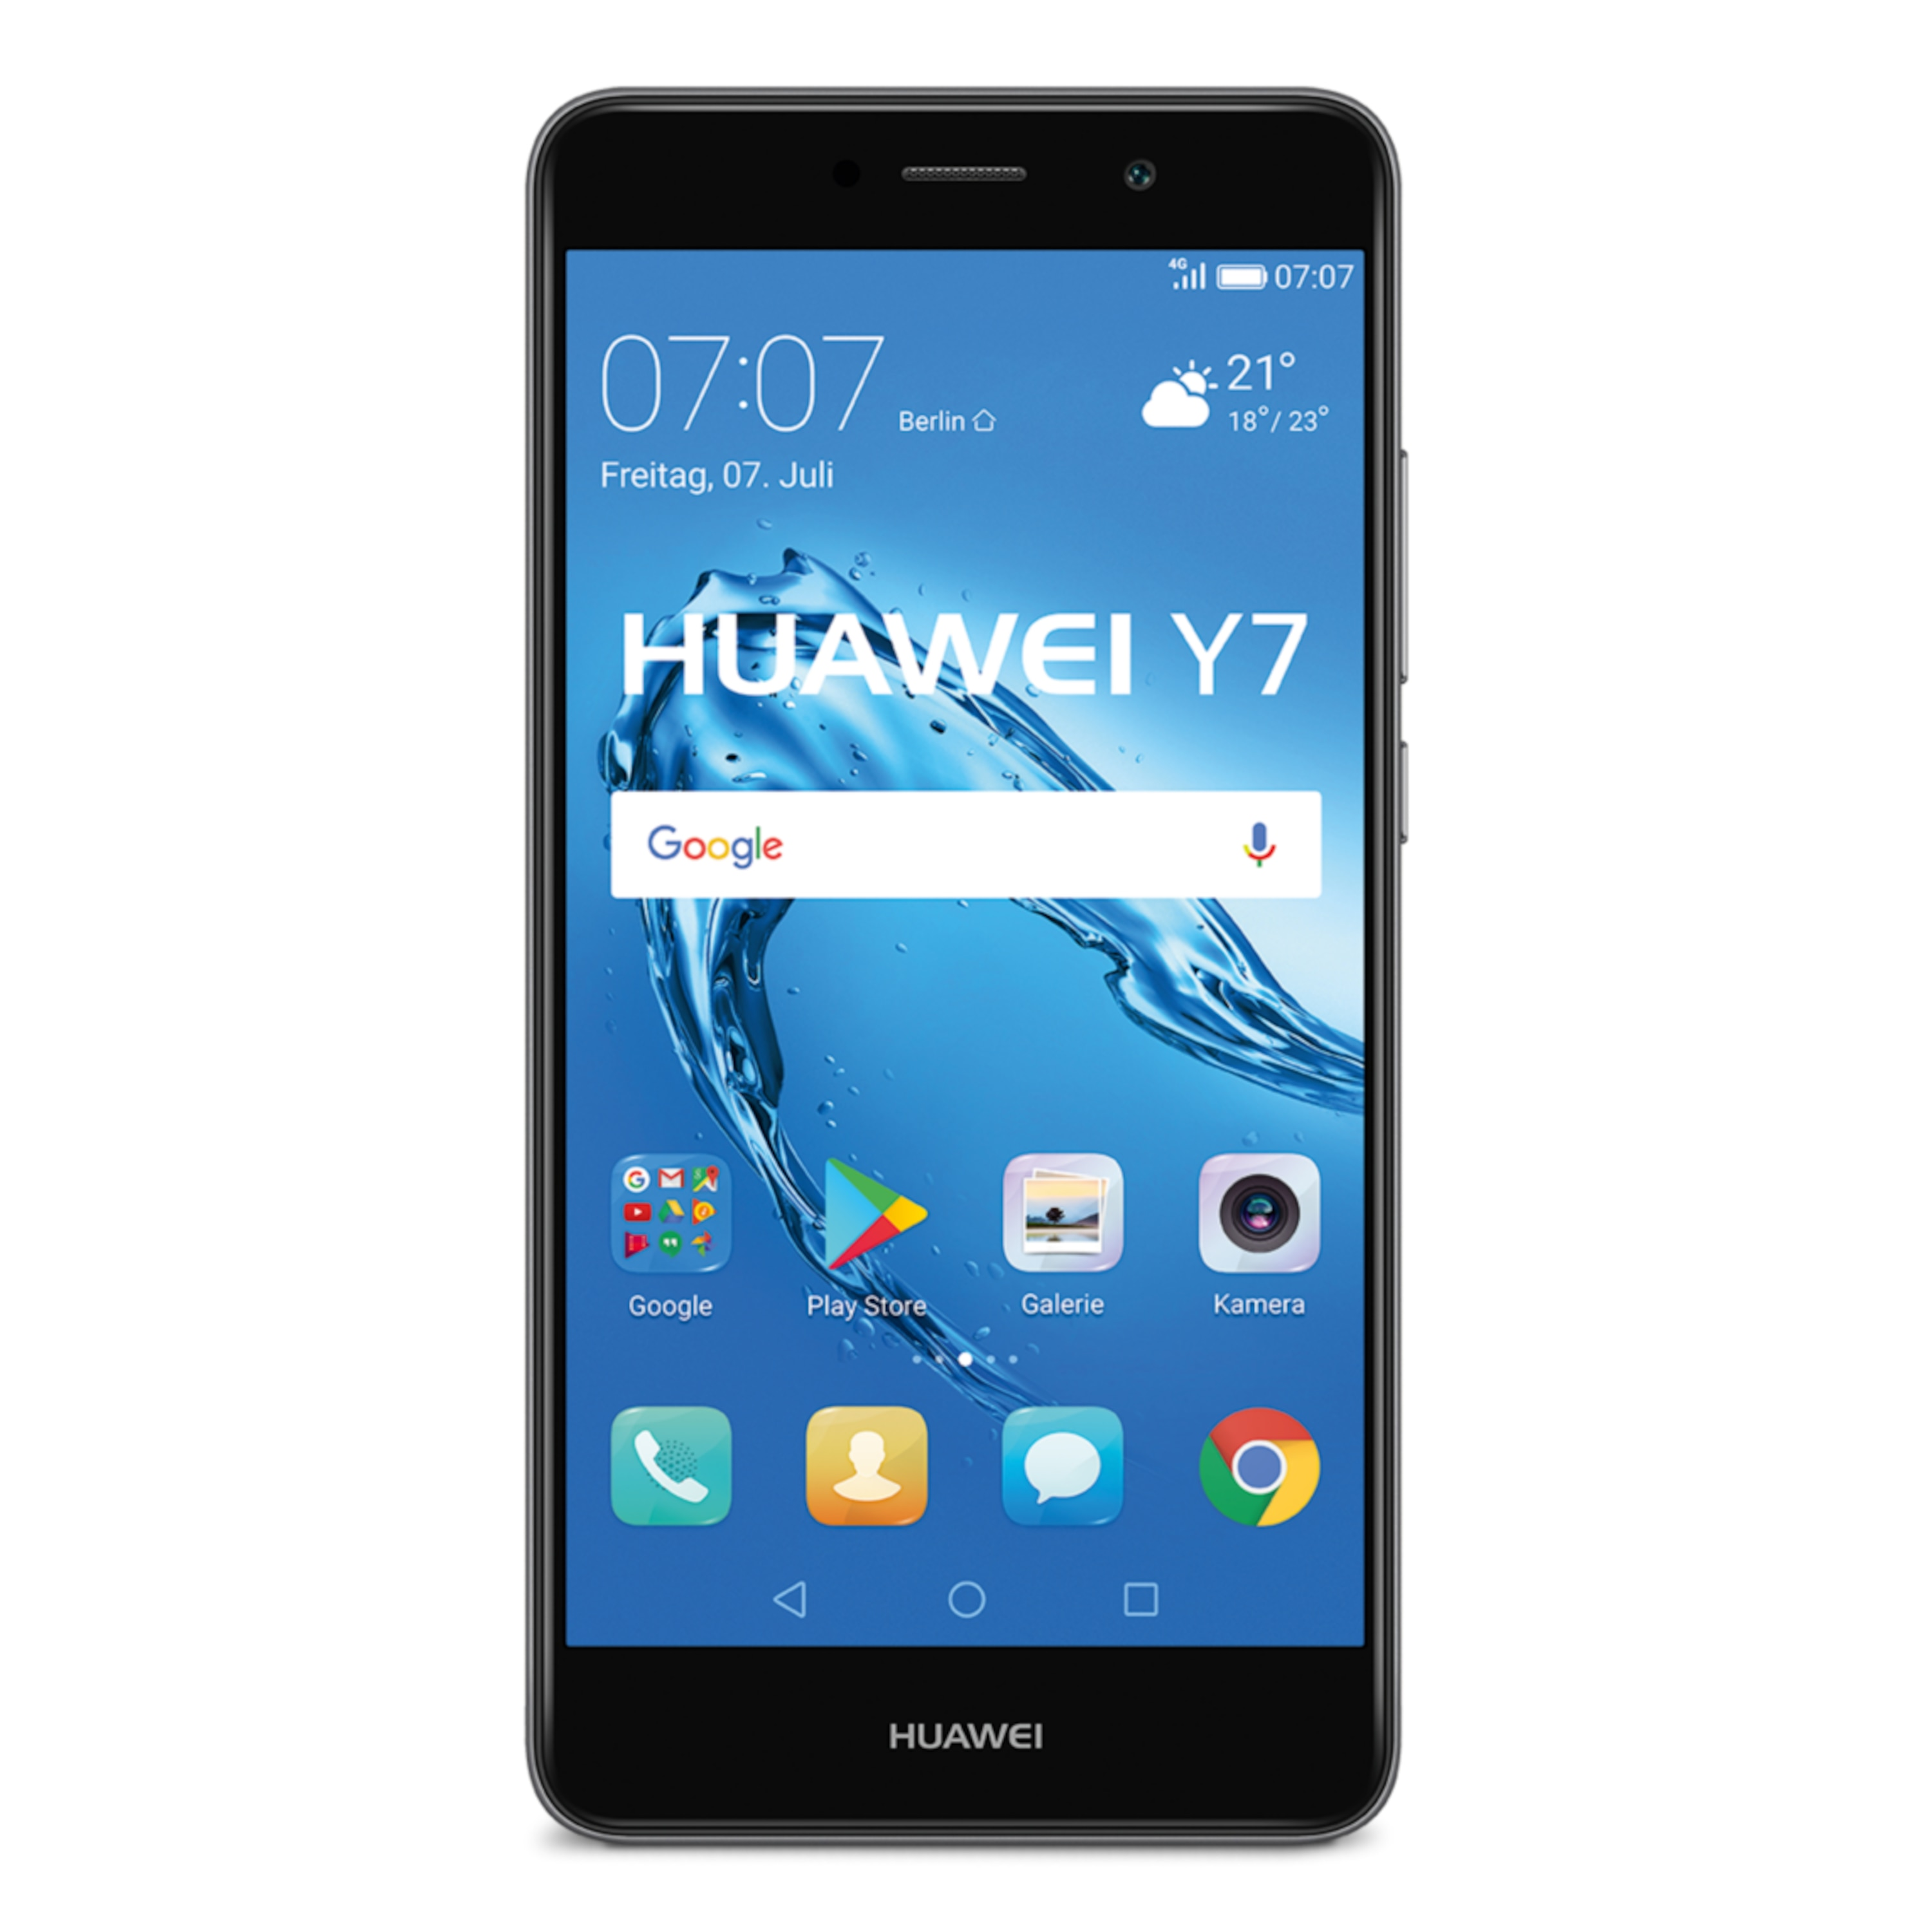 HUAWEI Y7 Smartphone, 13,97 cm (5,5) HD-Display, Android™ 7.0, 16 GB Speicher, Octa-Core-Prozessor